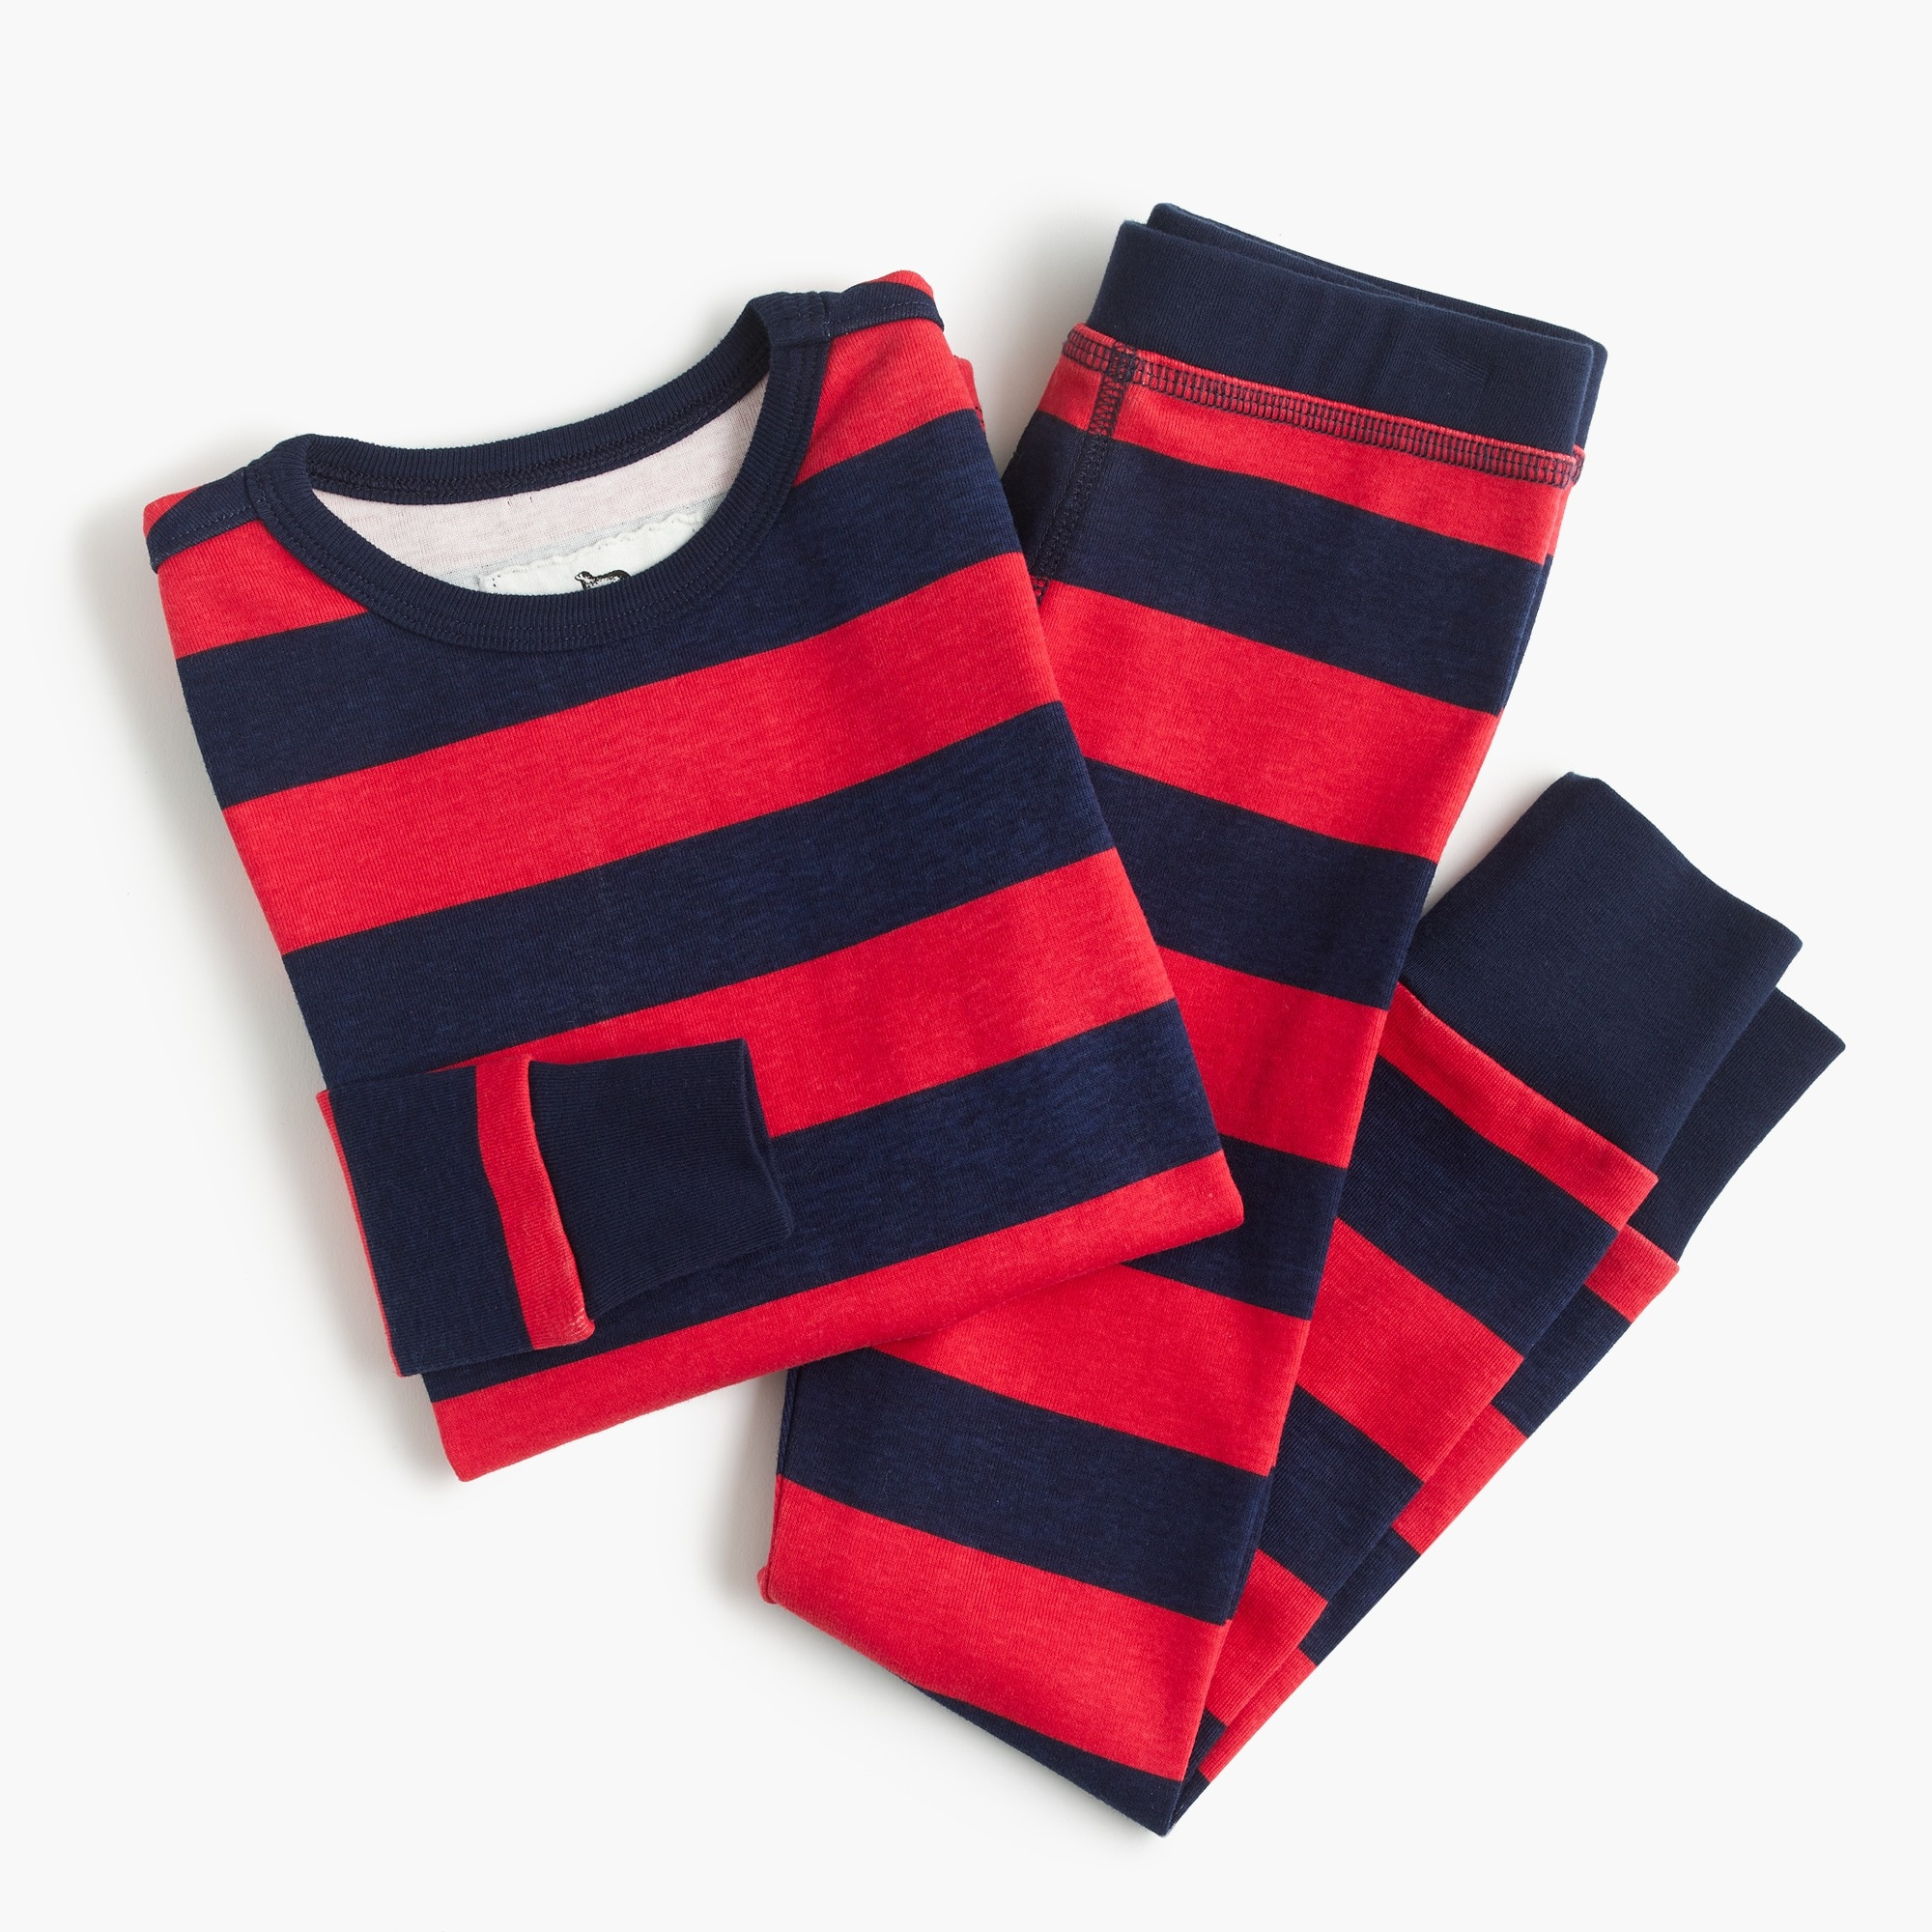 Image 4 for Kids' pajama set in red stripes